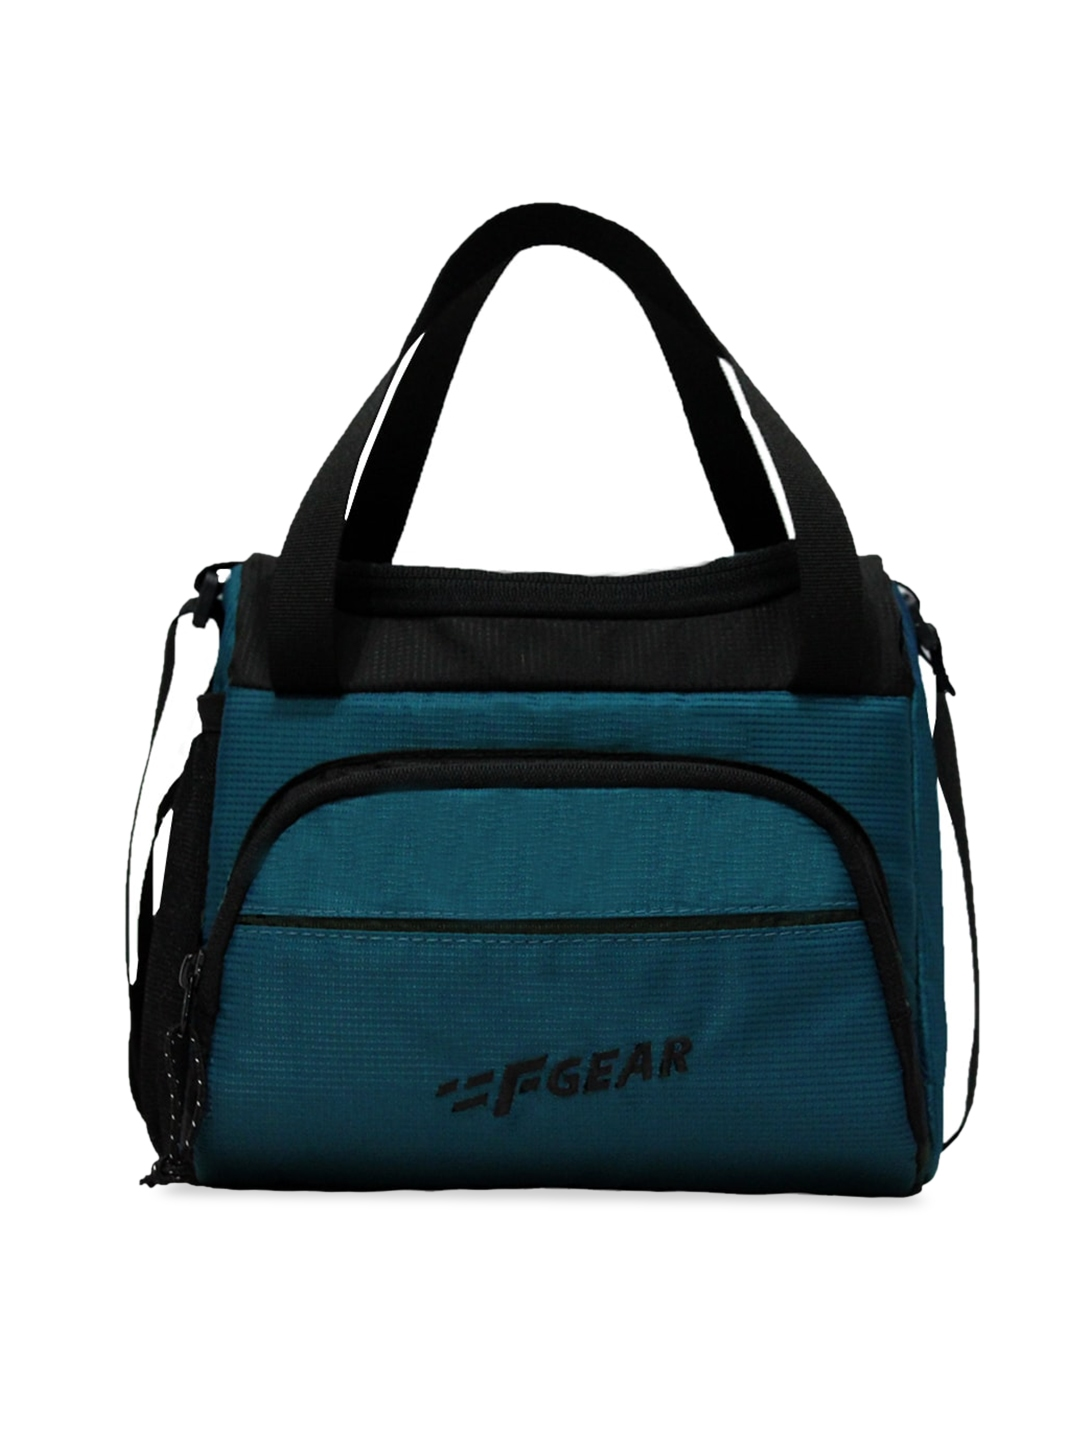 F Gear Blue   Black Textured Lunch Bag